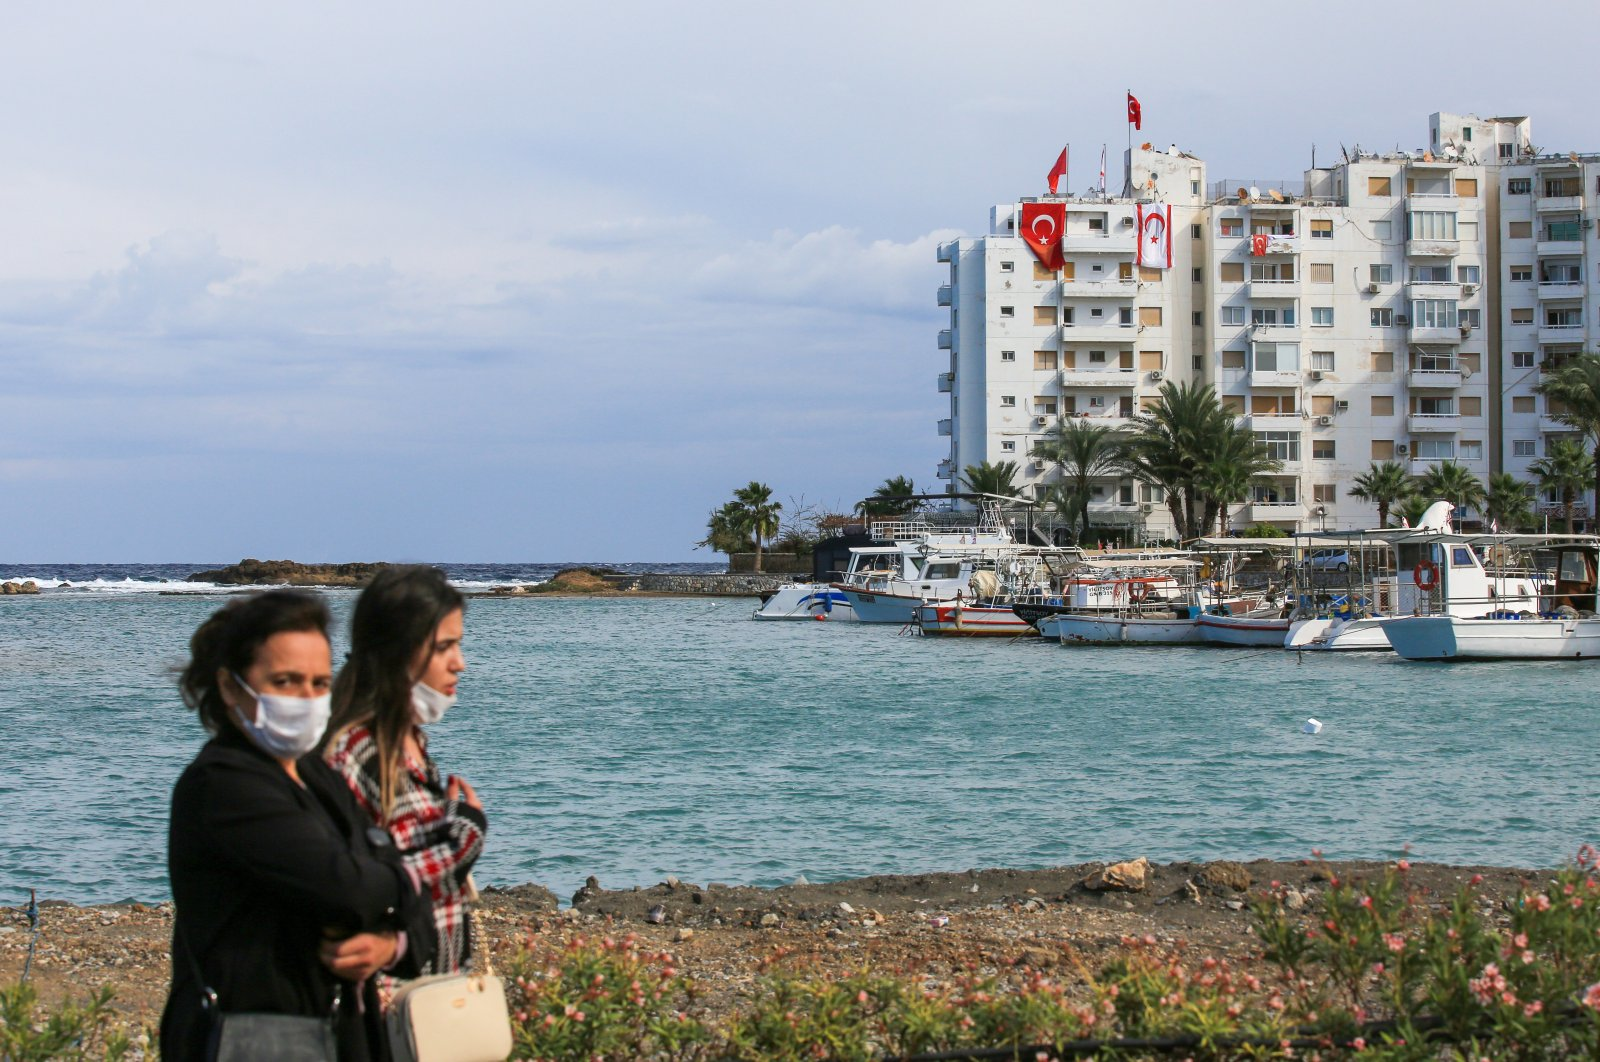 Women walk in the port city of Famagusta near the town of Varosha, in Famagusta, Cyprus, Nov. 15, 2020. (Photo by Getty Images)